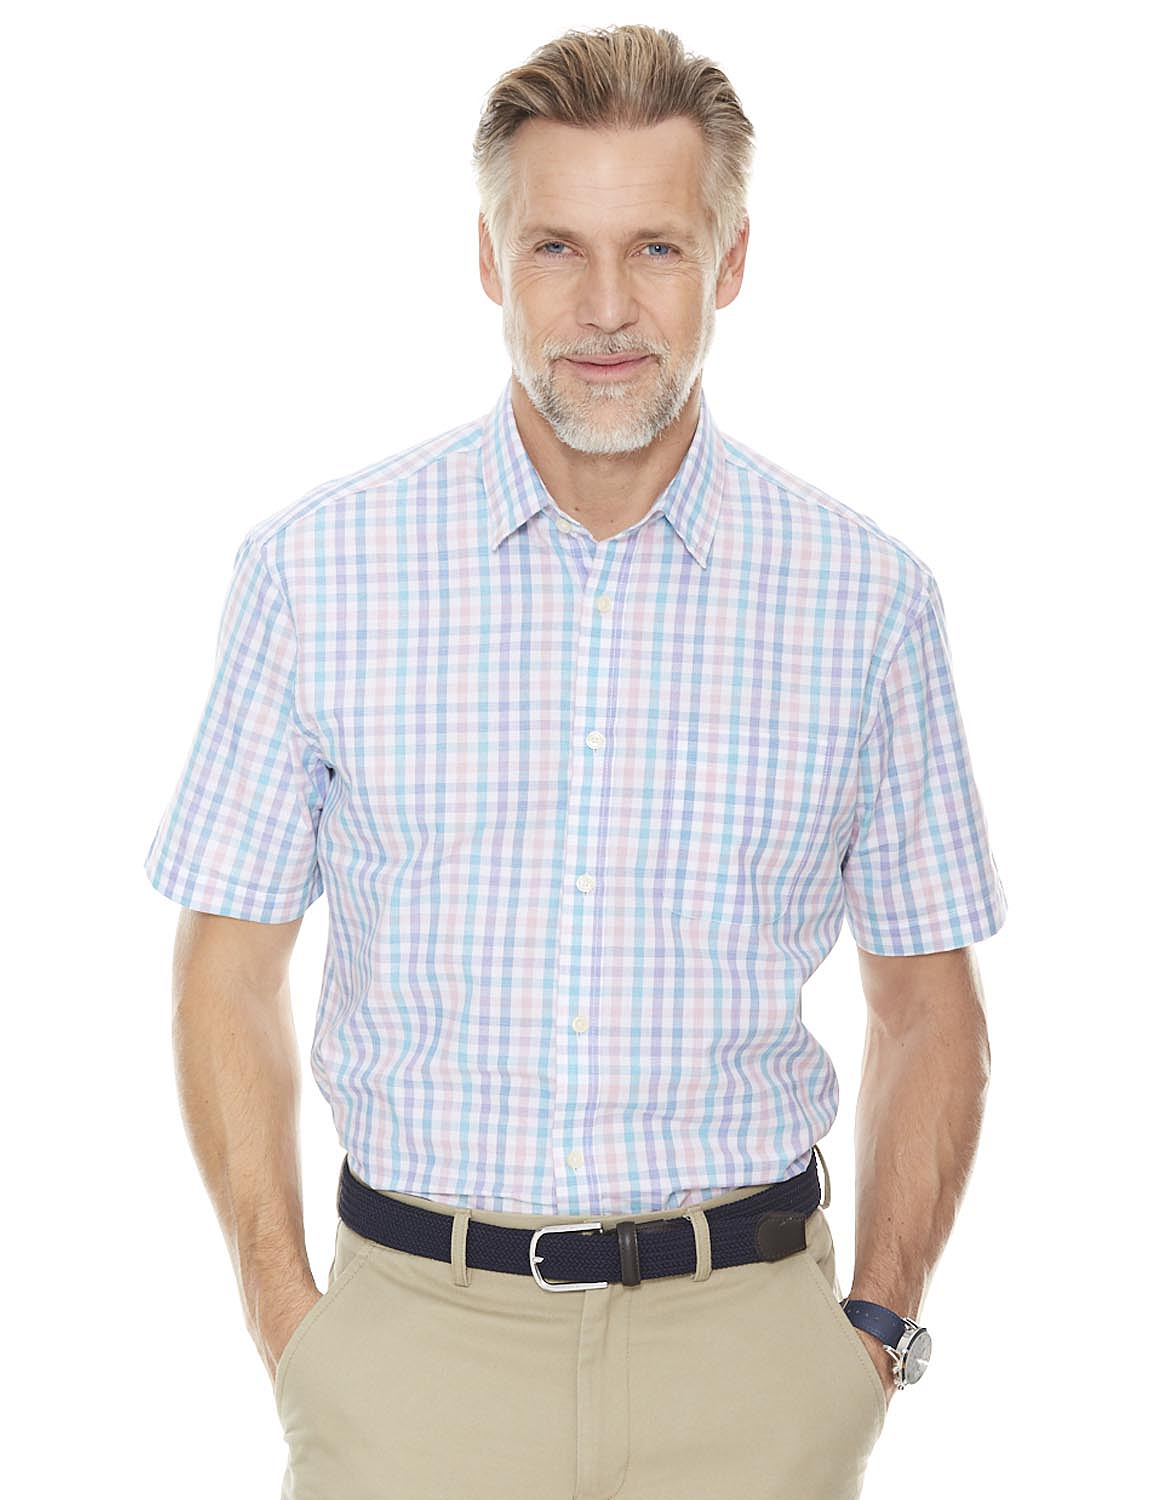 Gingham Check Short Sleeve Shirt with Chest Pocket - MULTI